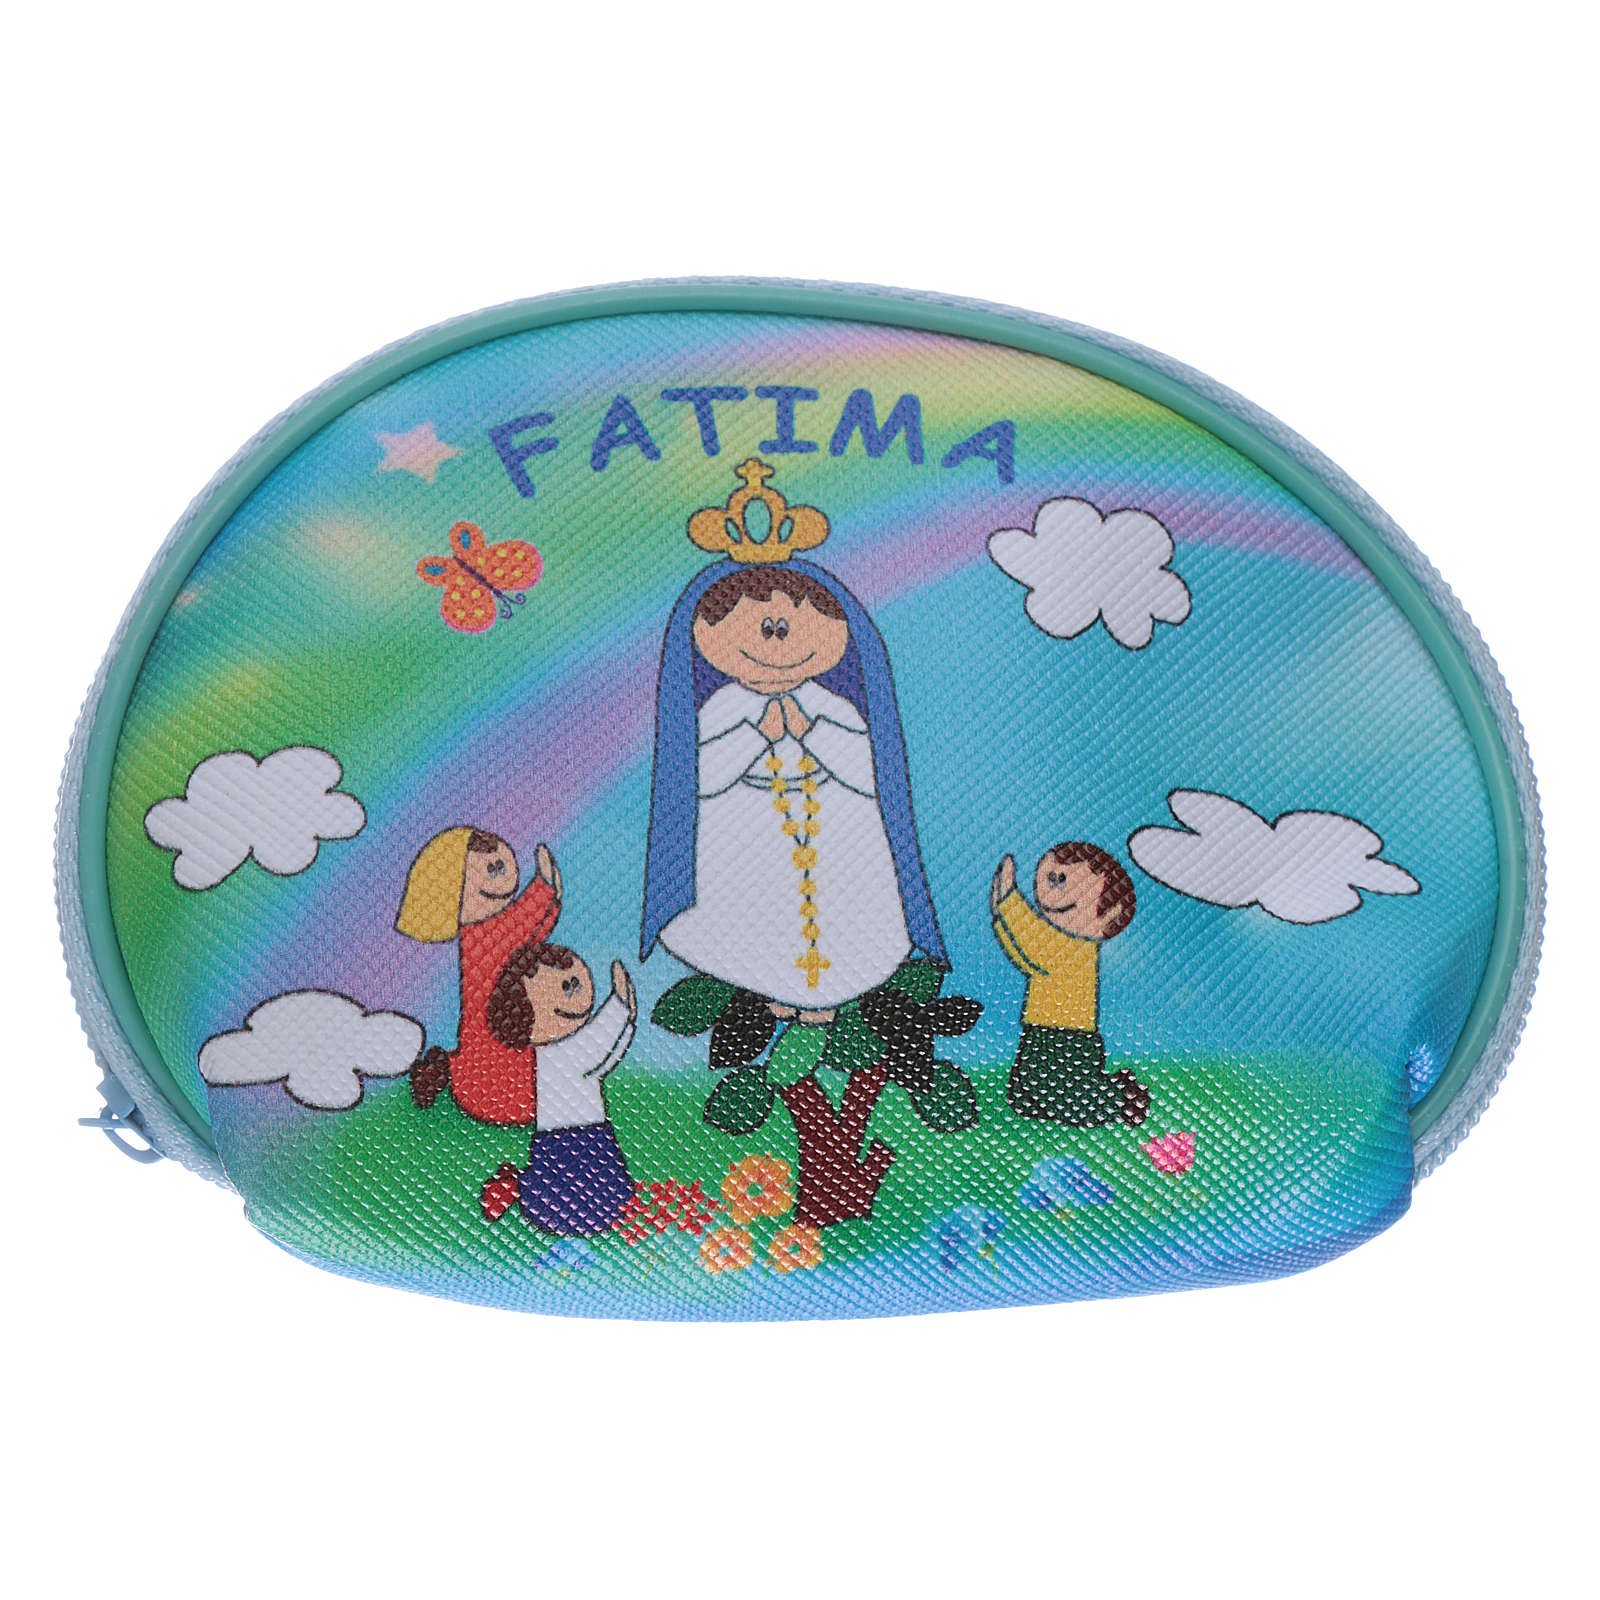 Purse rosary holder 10x8 cm with Our Lady of Fatima image 4